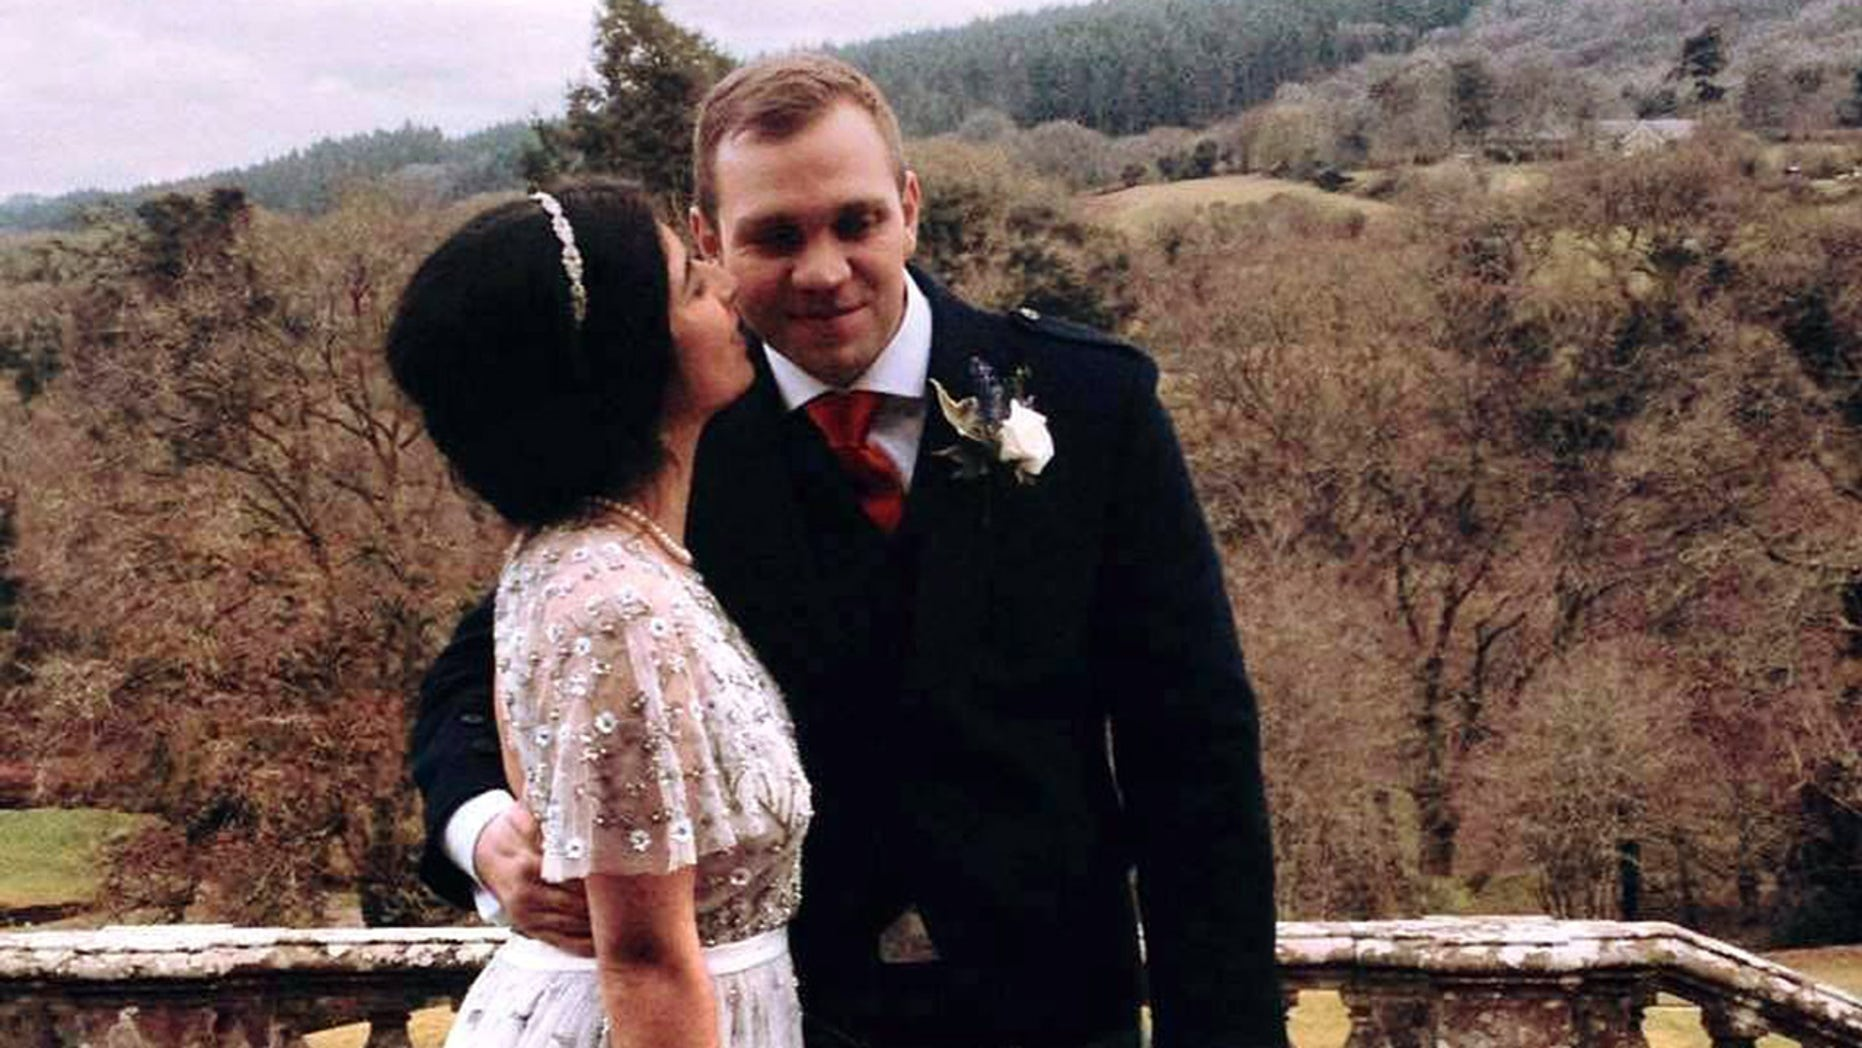 According to reports, Matthew Hedges, a British student, was held in solitary confinement for five months in the United Arab Emirates.